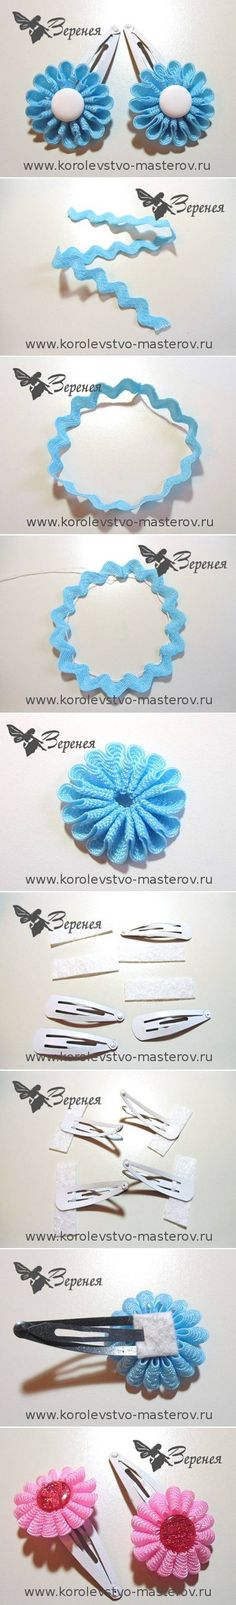 DIY Braid Flower DIY Projects | UsefulDIY.com Follow Us on Facebook ==> http://www.facebook.com/UsefulDiy